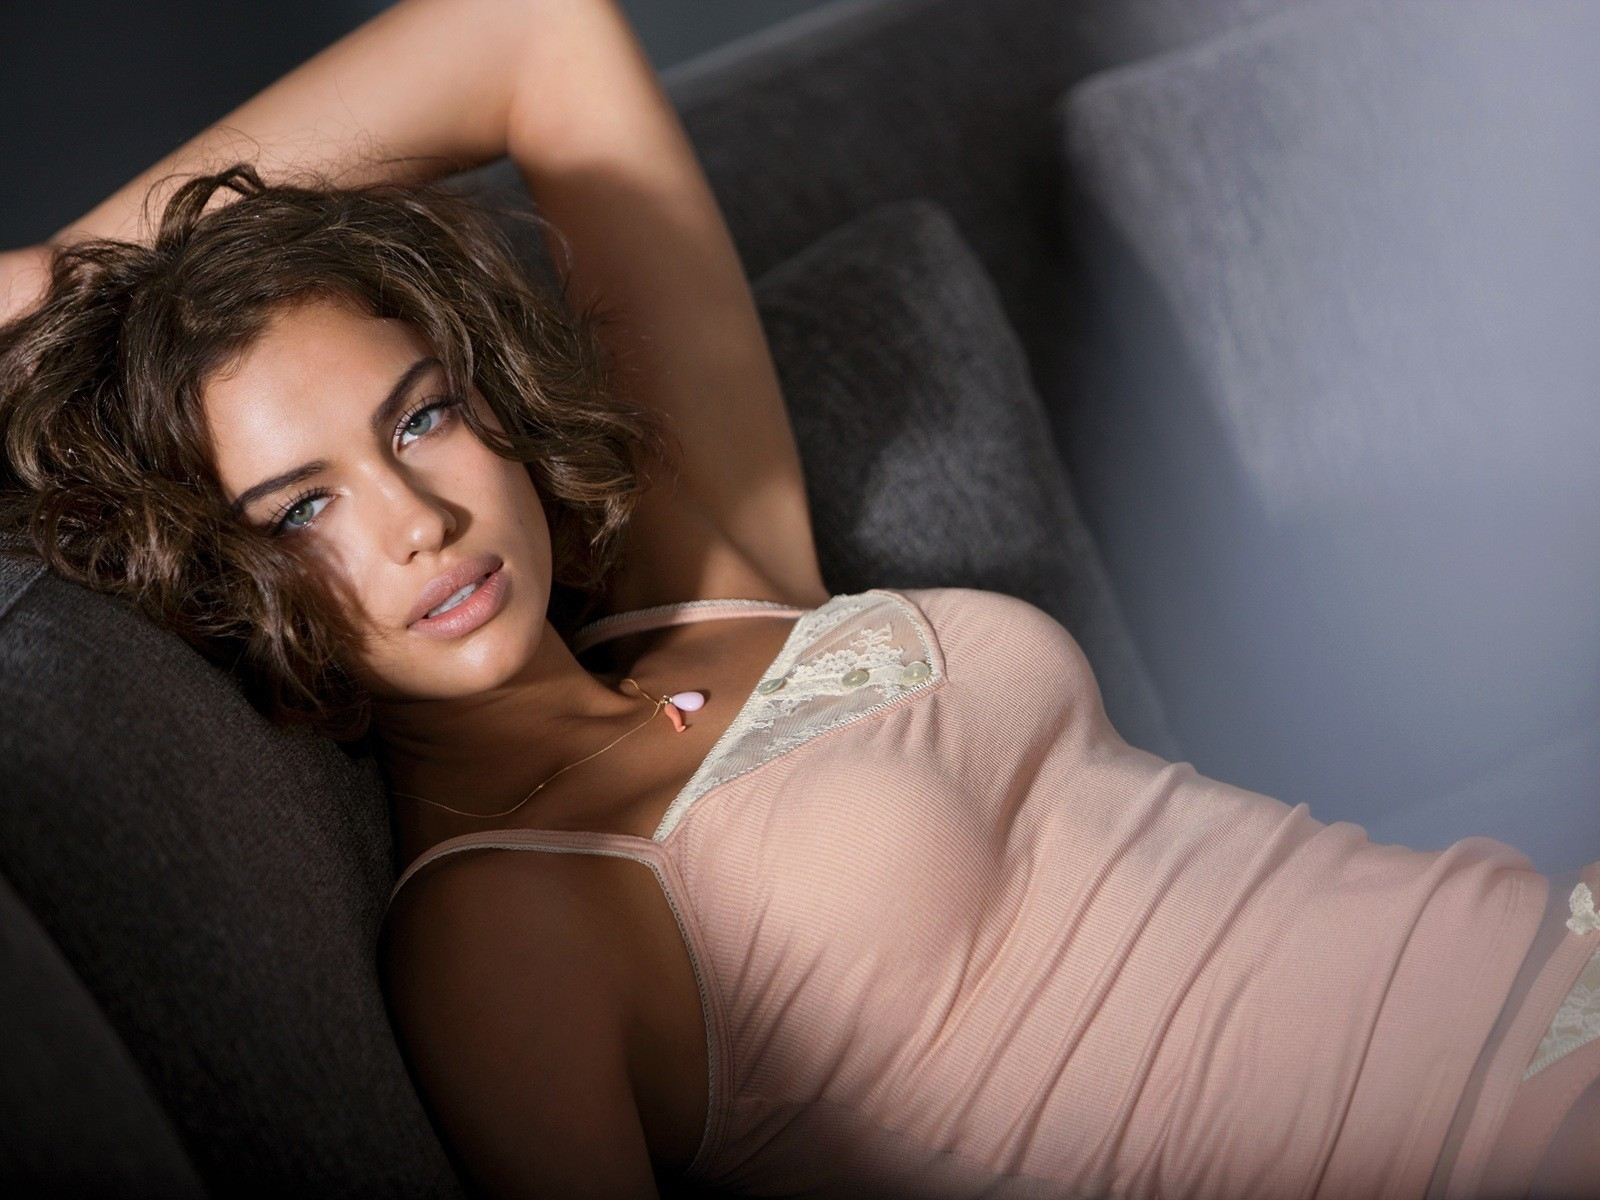 brunettes woman irina shayk HD Wallpaper